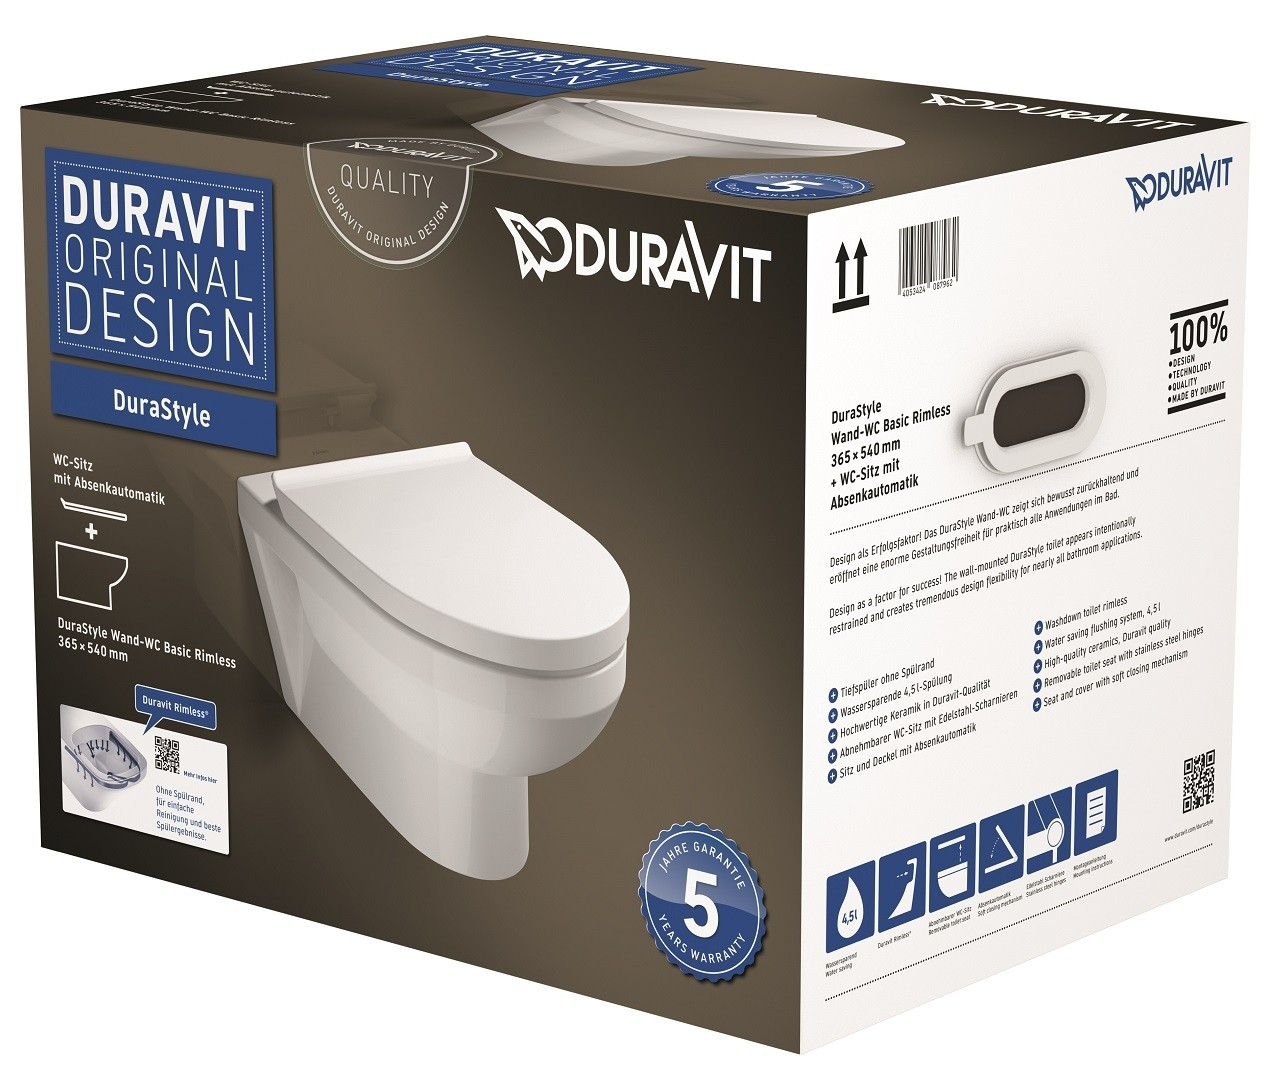 Duravit Durastyle Basic Wall Mounted Washdown Toilet Set